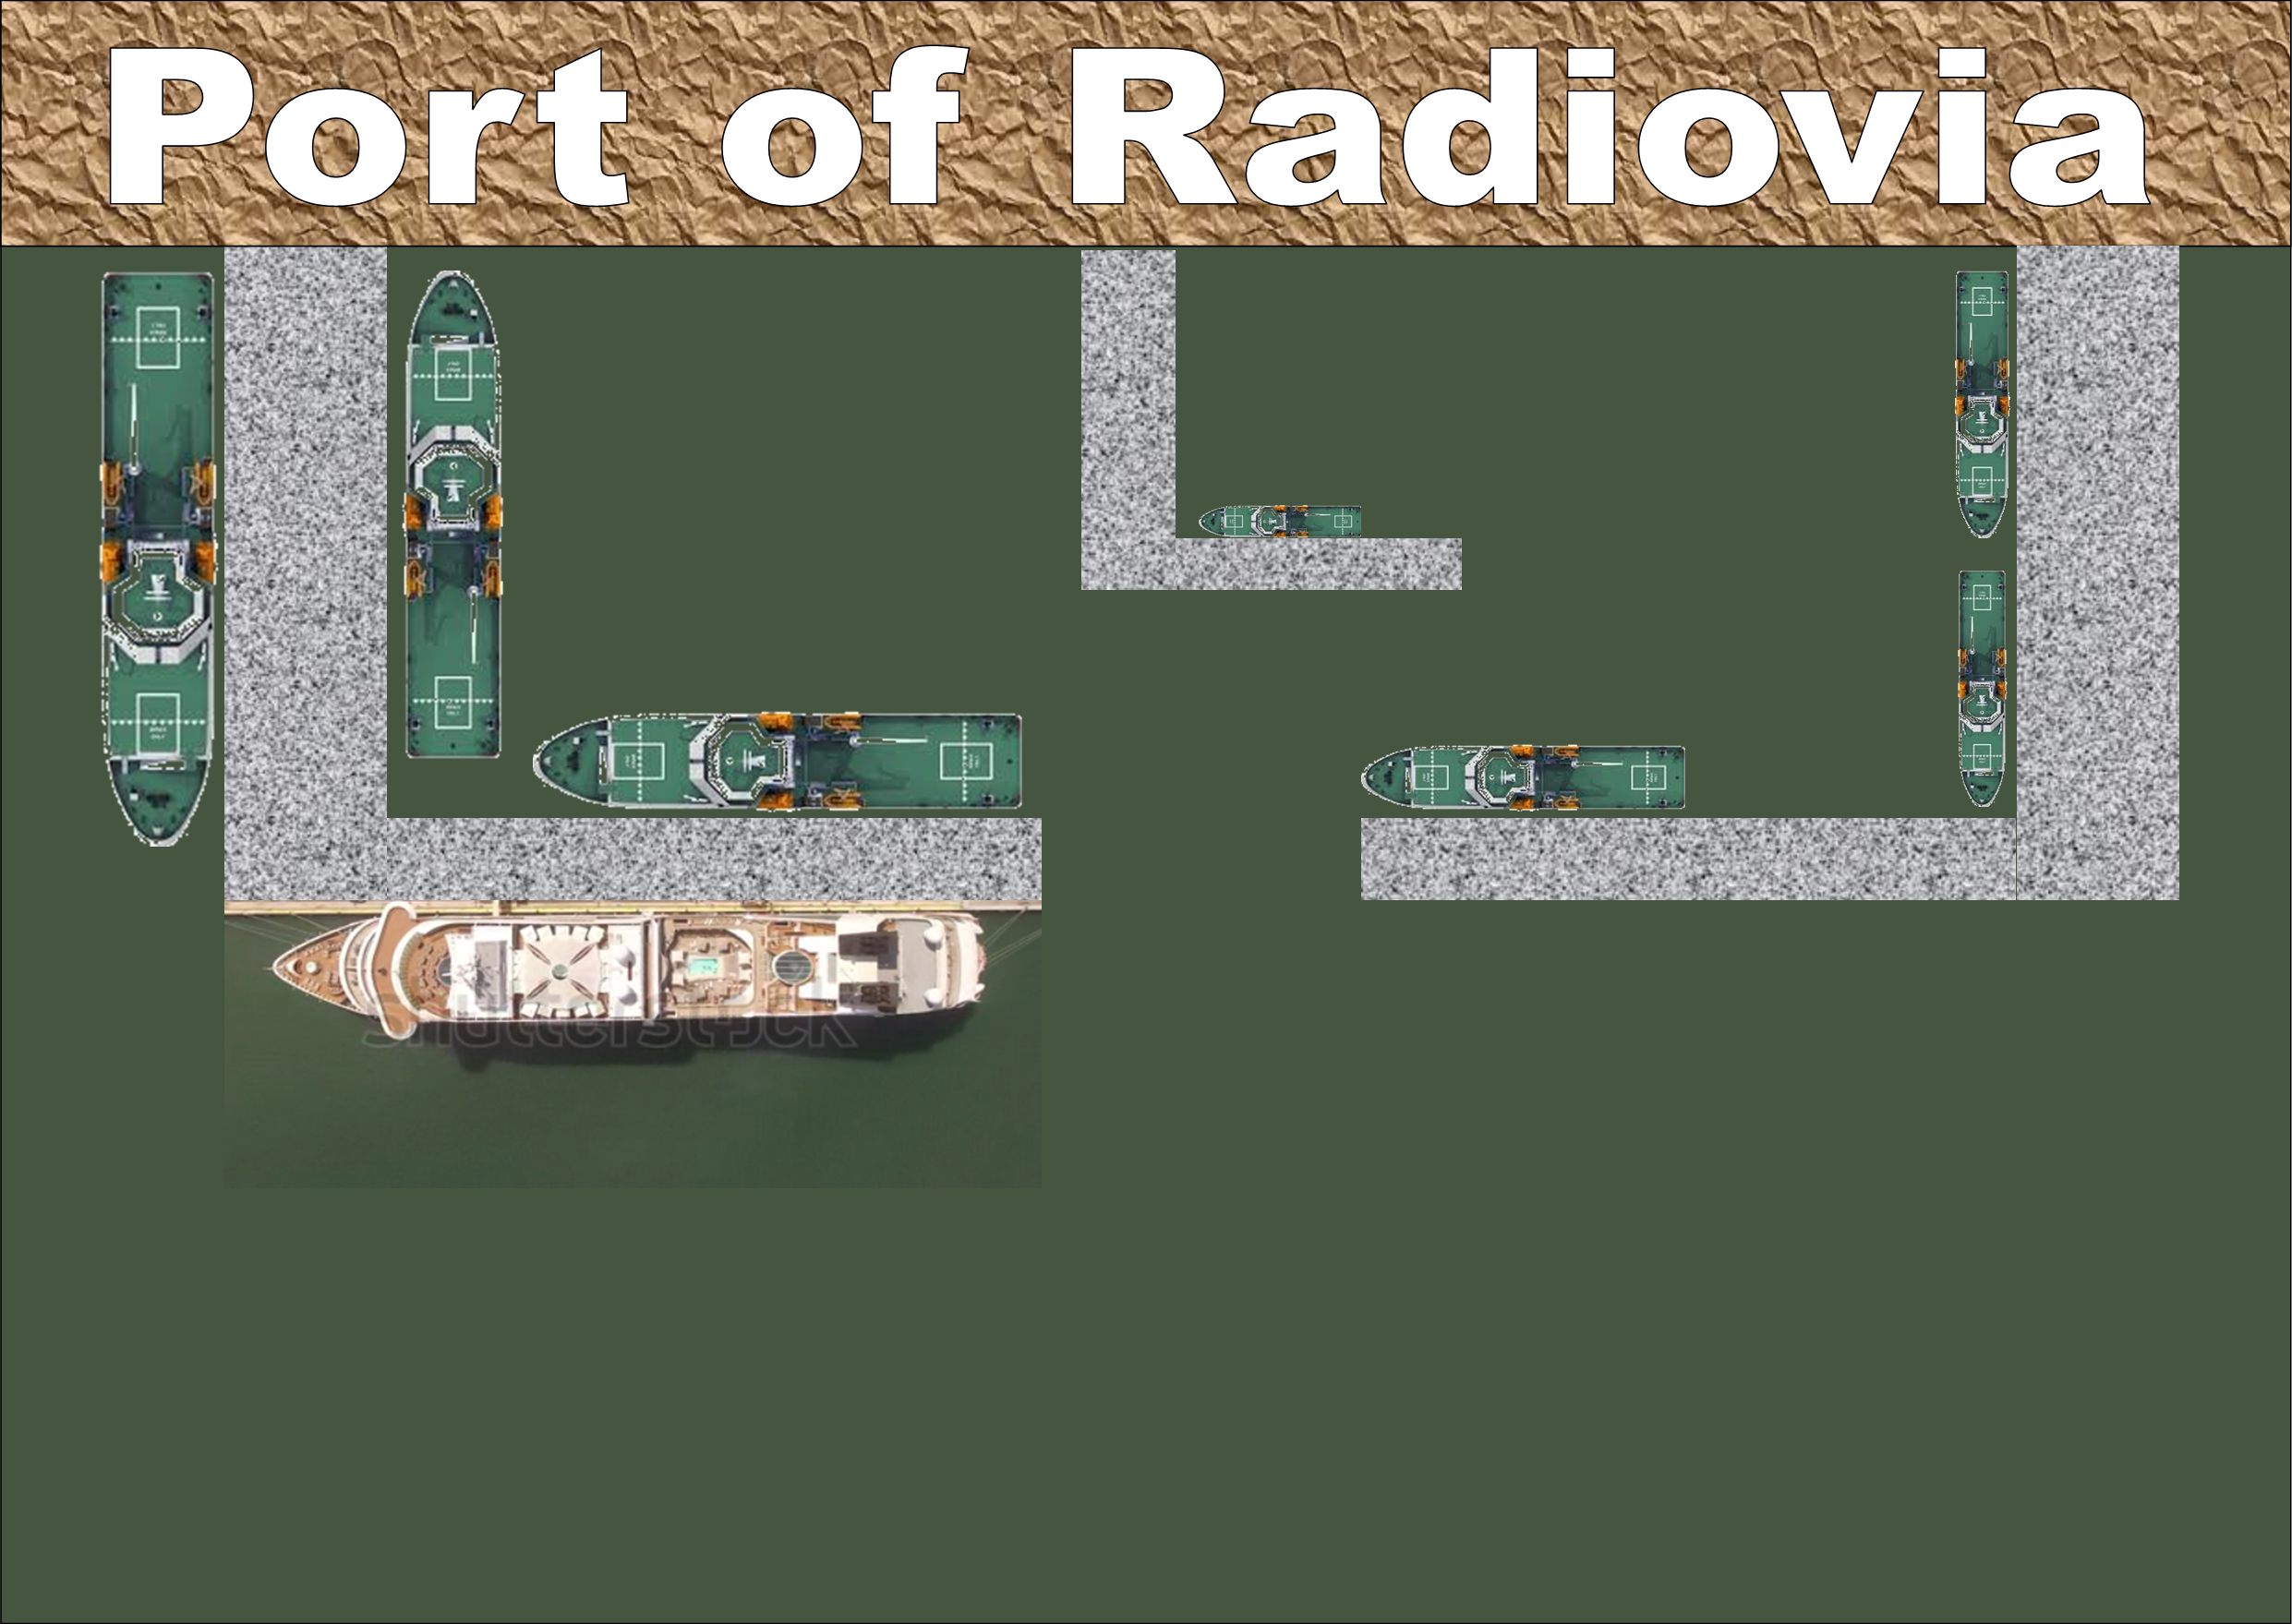 Construction started at the Port of Radiovia